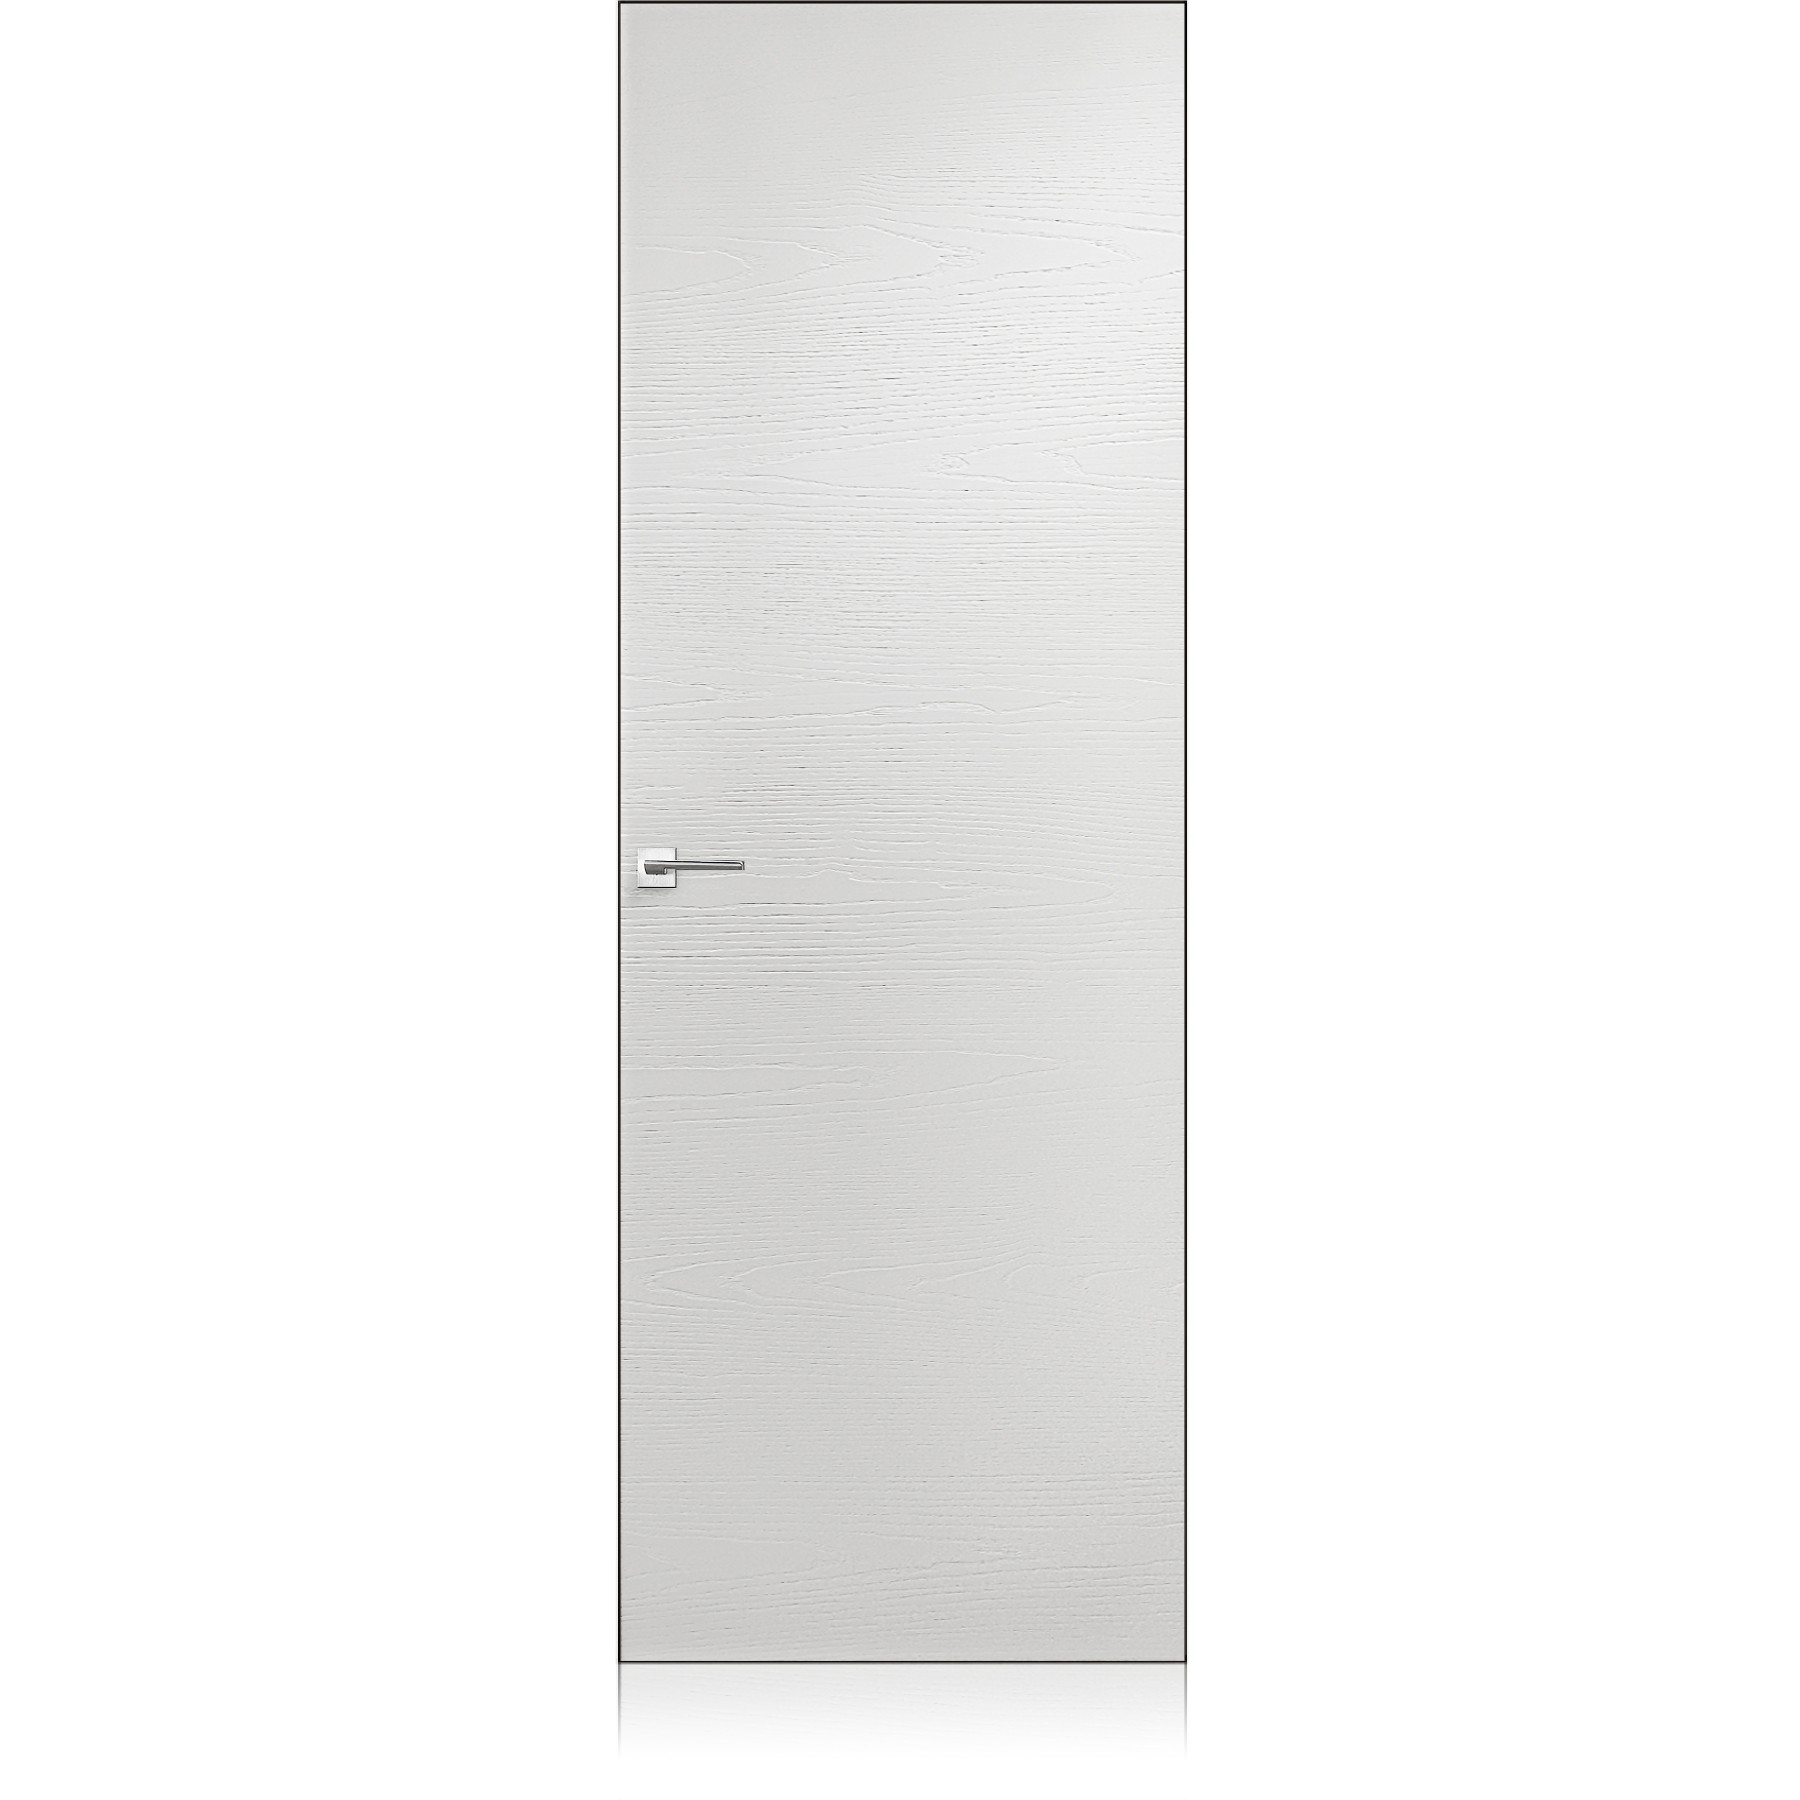 Equa Zero trame bianco optical door